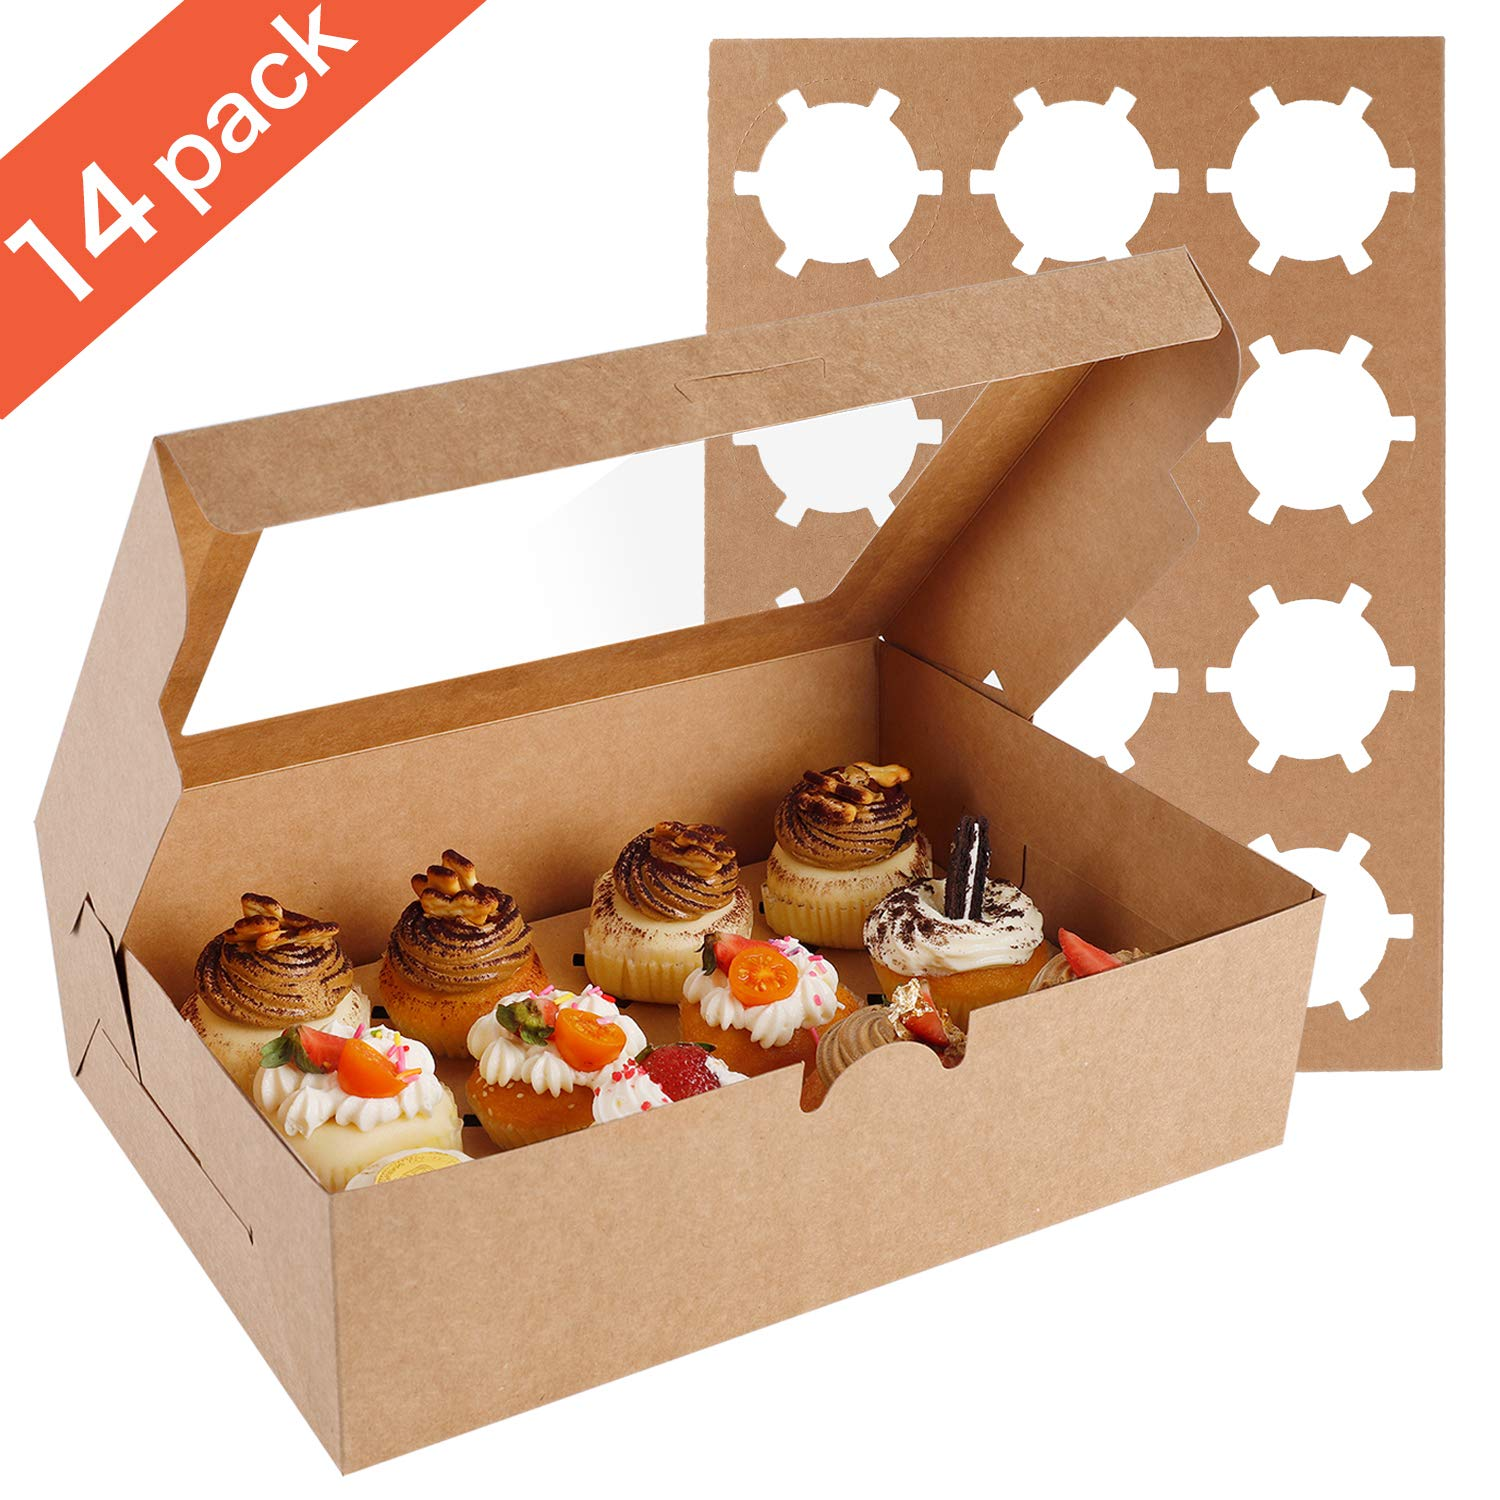 Farielyn-X 14 Packs Cupcake Boxes, Food Grade Kraft Bakery Boxes with Inserts and Display Windows Fits 12 Cupcakes or Muffins by Farielyn-X